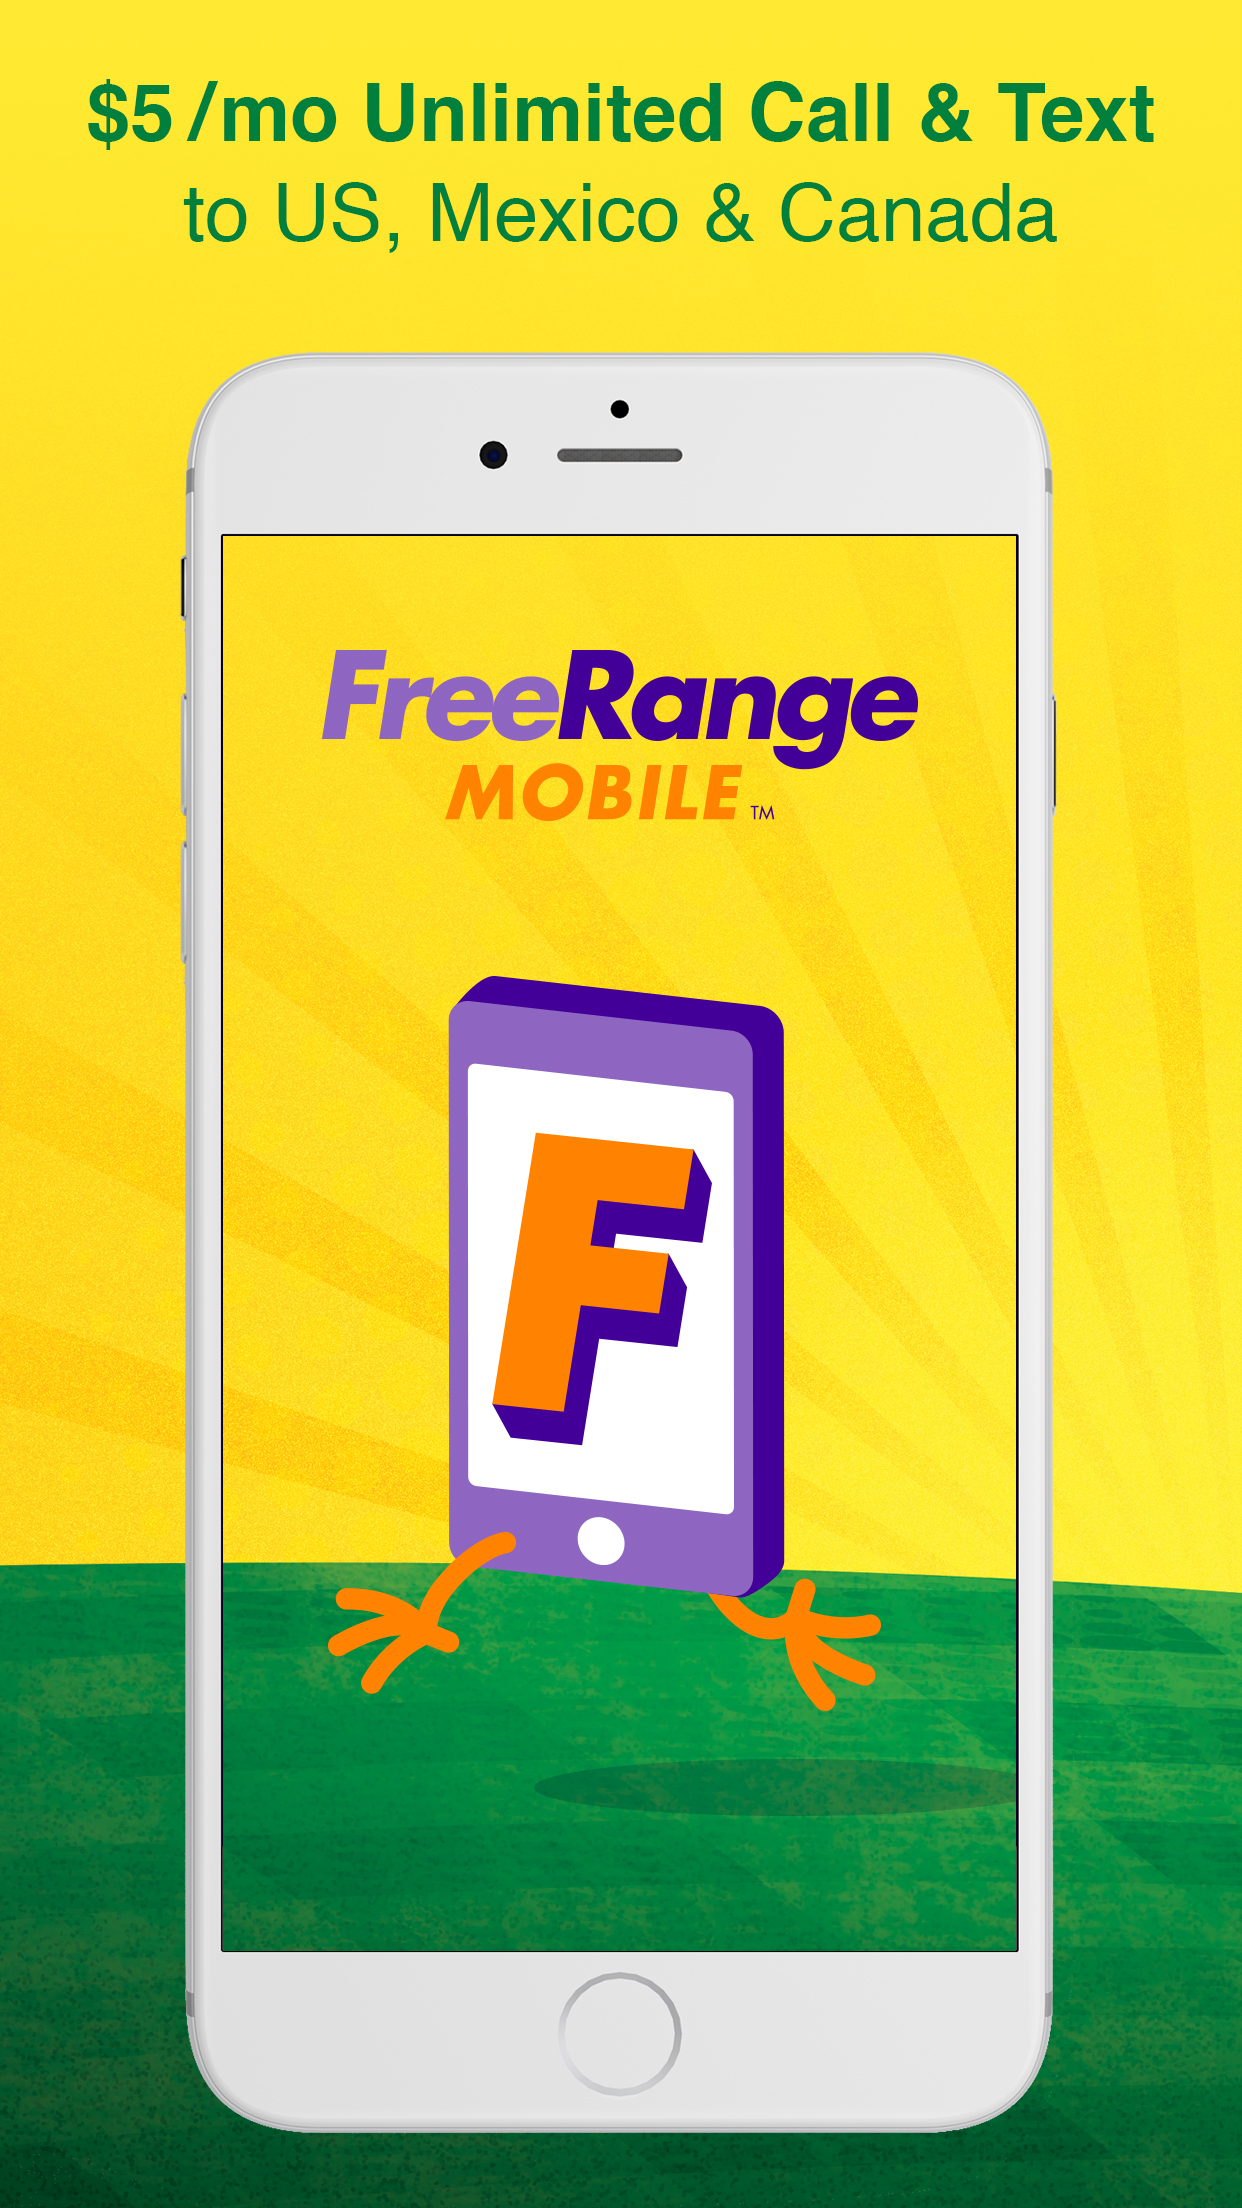 FreeRange Mobile: Call & Text